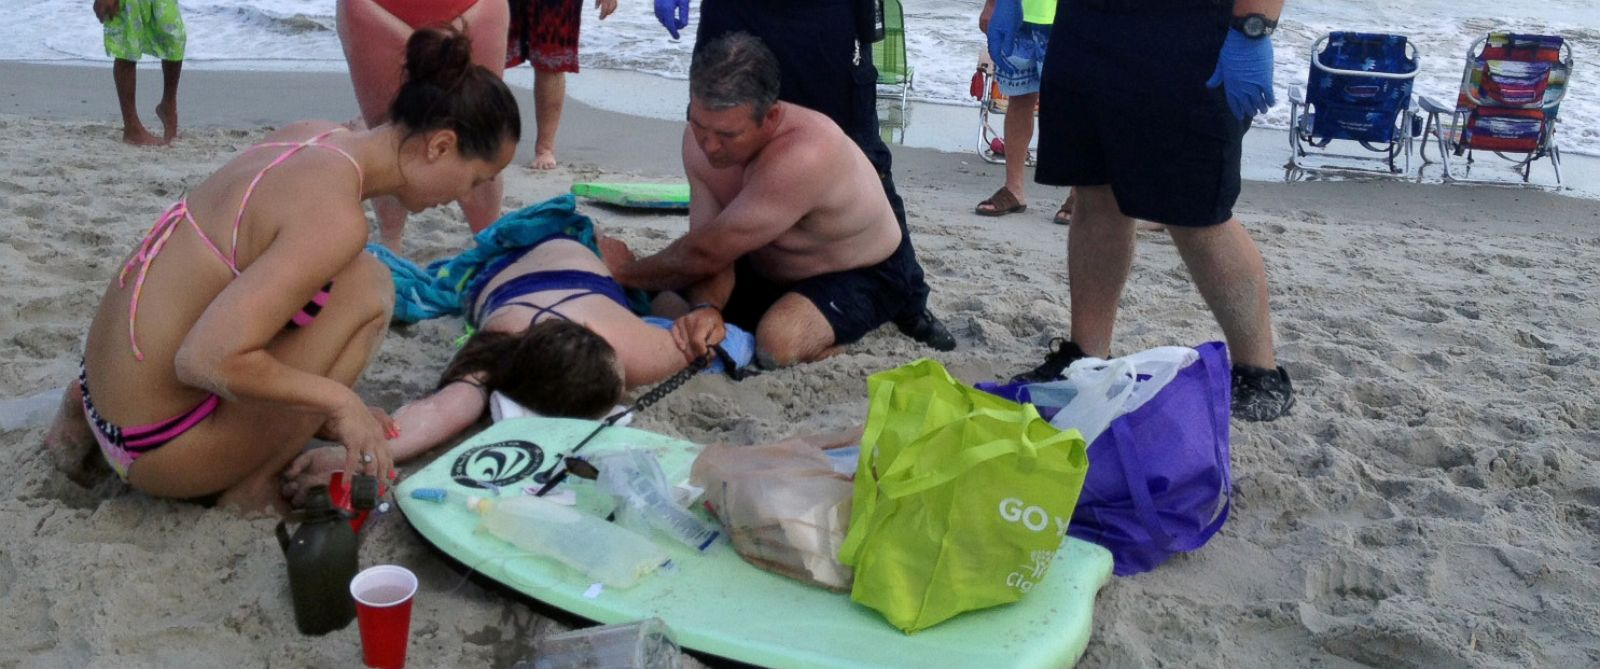 PHOTO: People assist a teenage girl at the scene of a shark attack in Oak Island, N.C., Sunday, June 14, 2015.